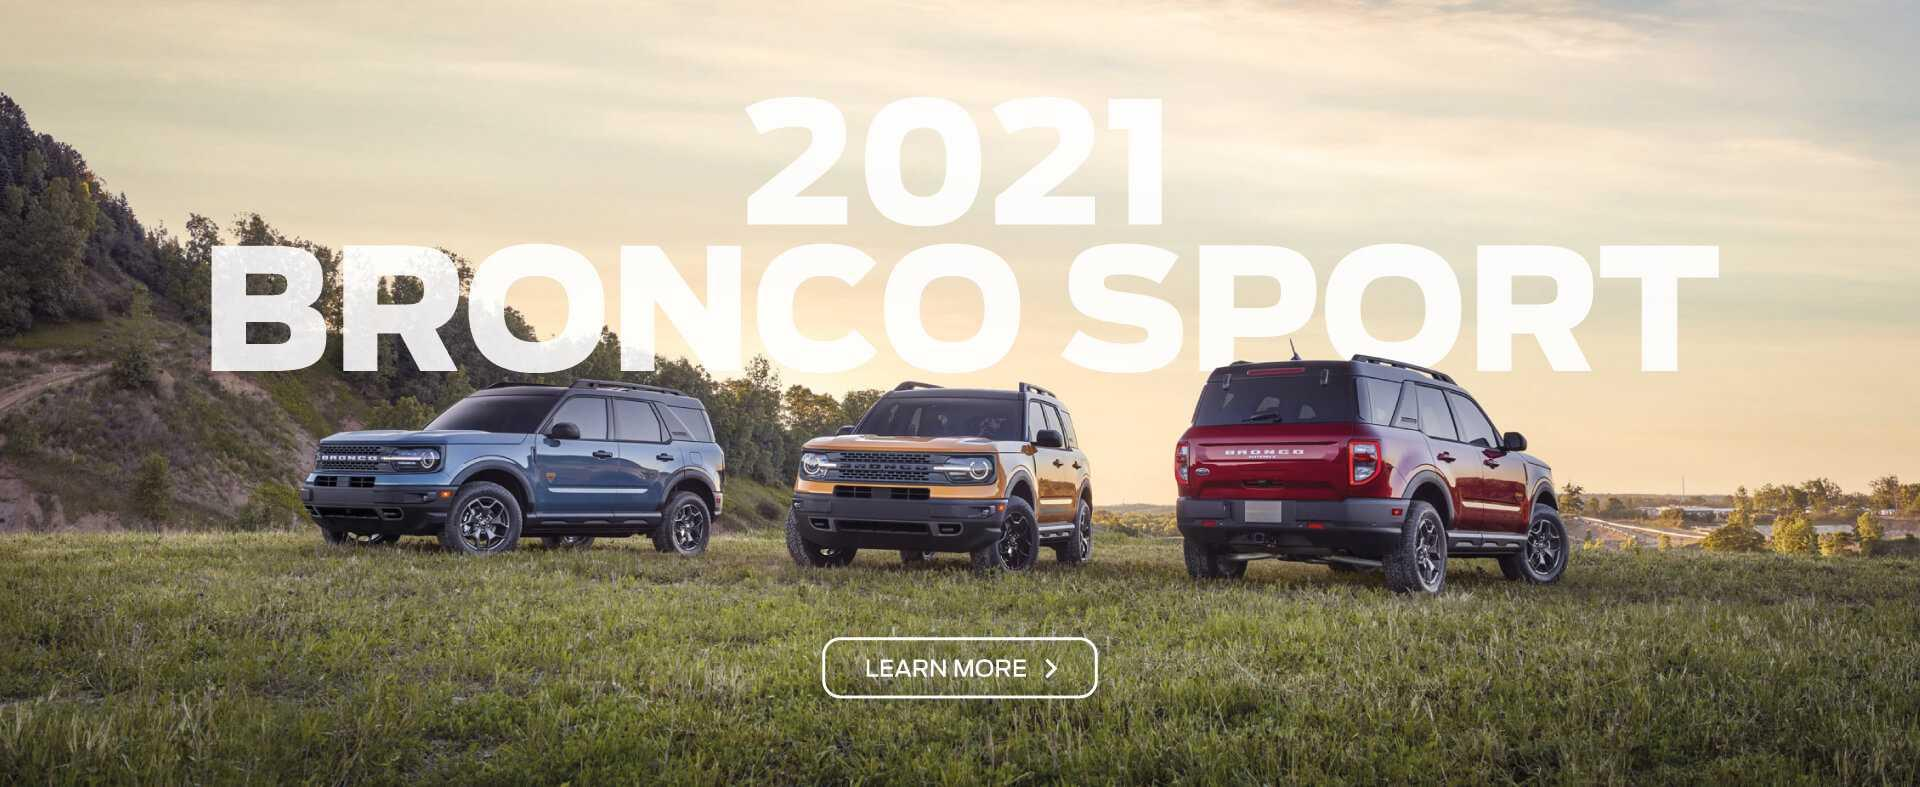 2021 Ford Bronco Sport | Hatheway Limited